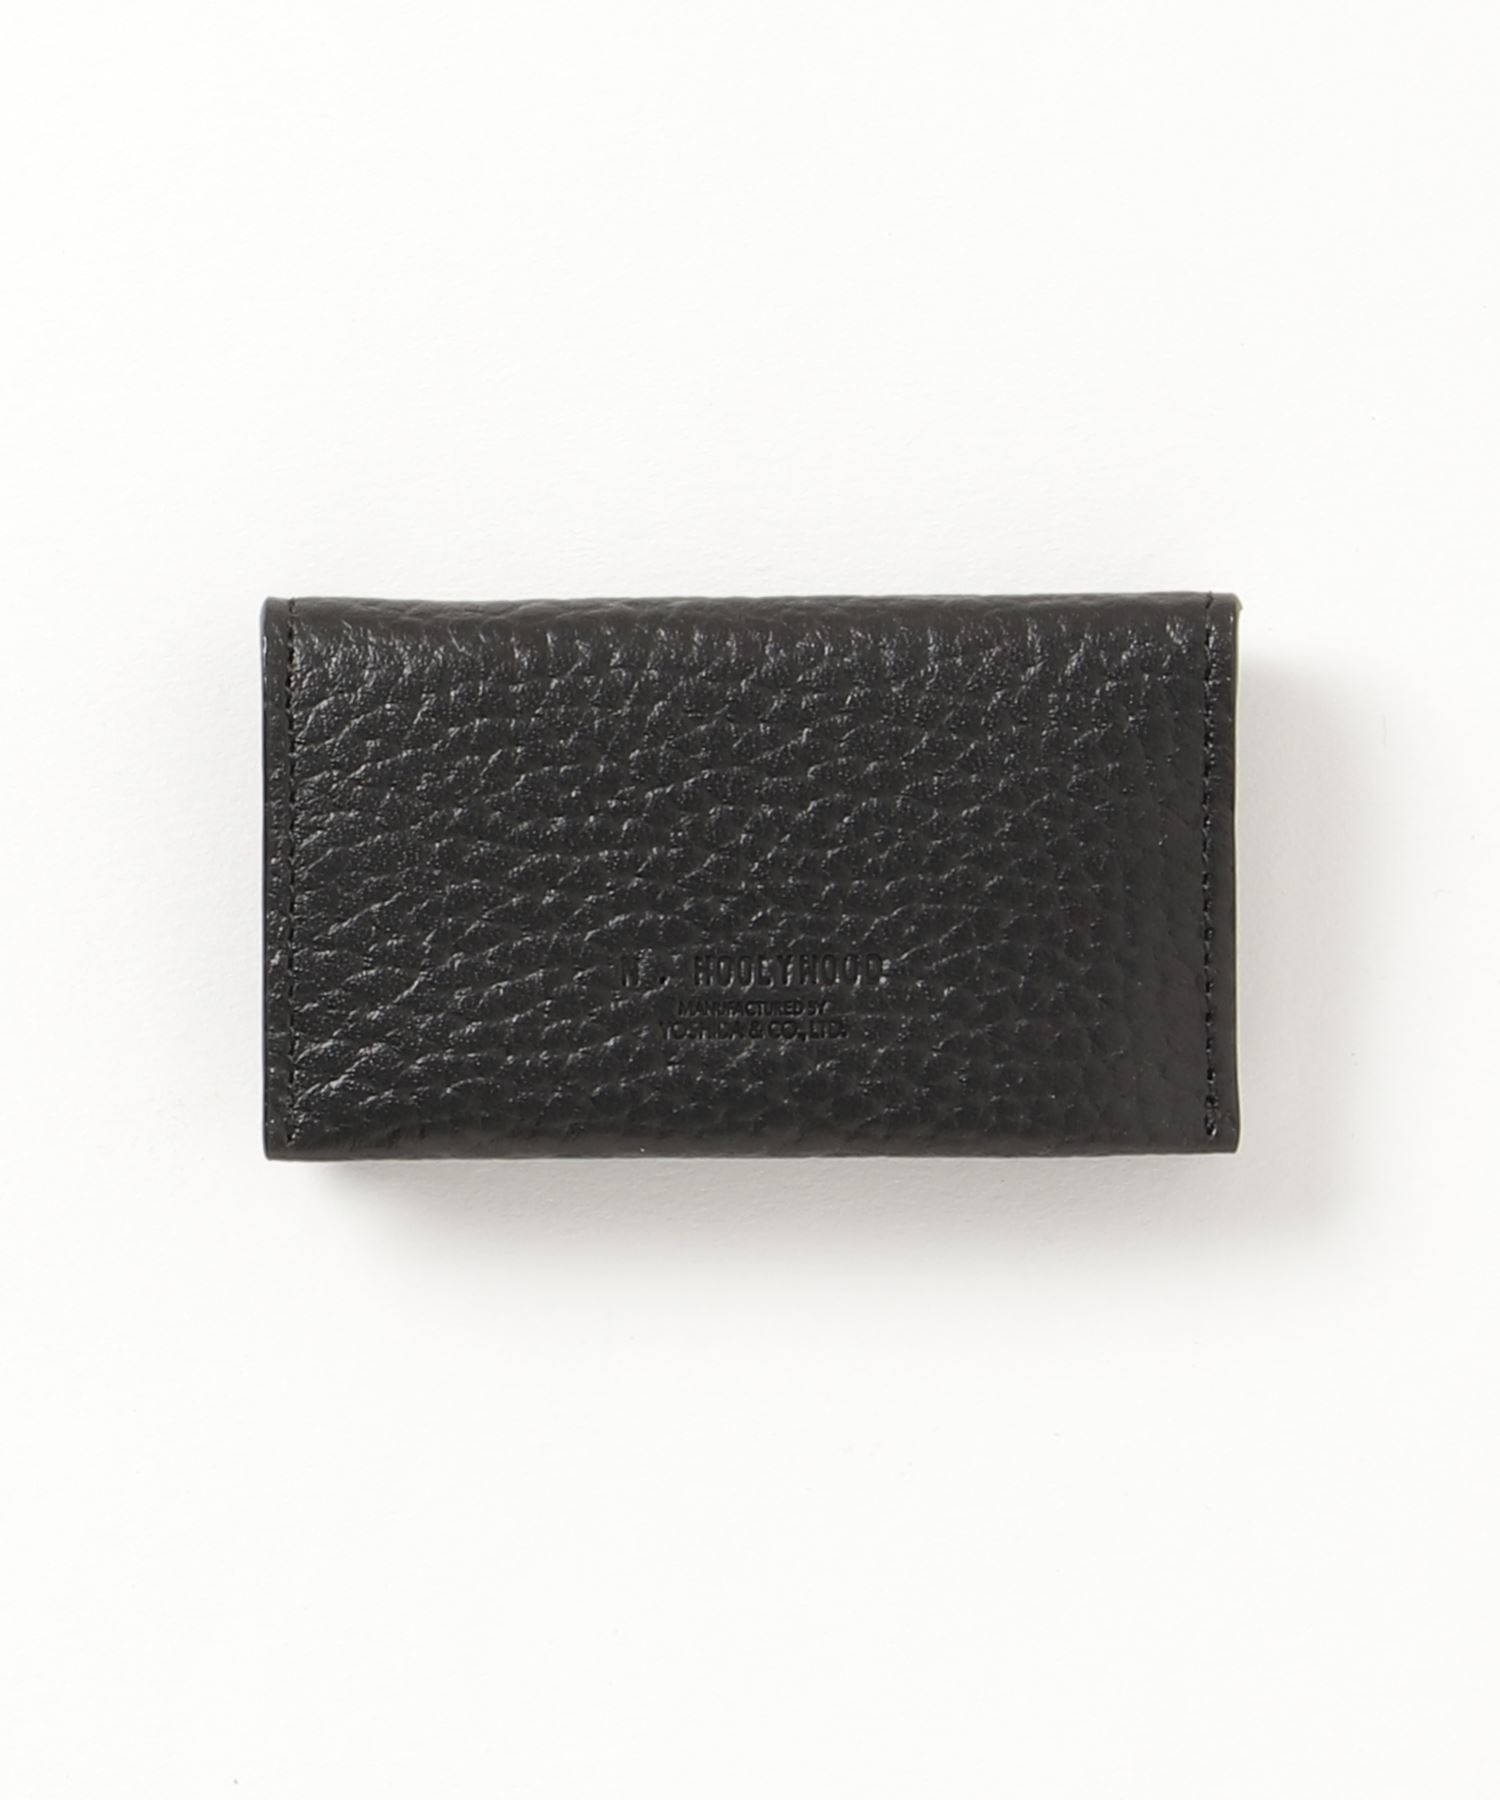 COIN CASE【N.HOOLYWOOD COMPILE × PORTER】